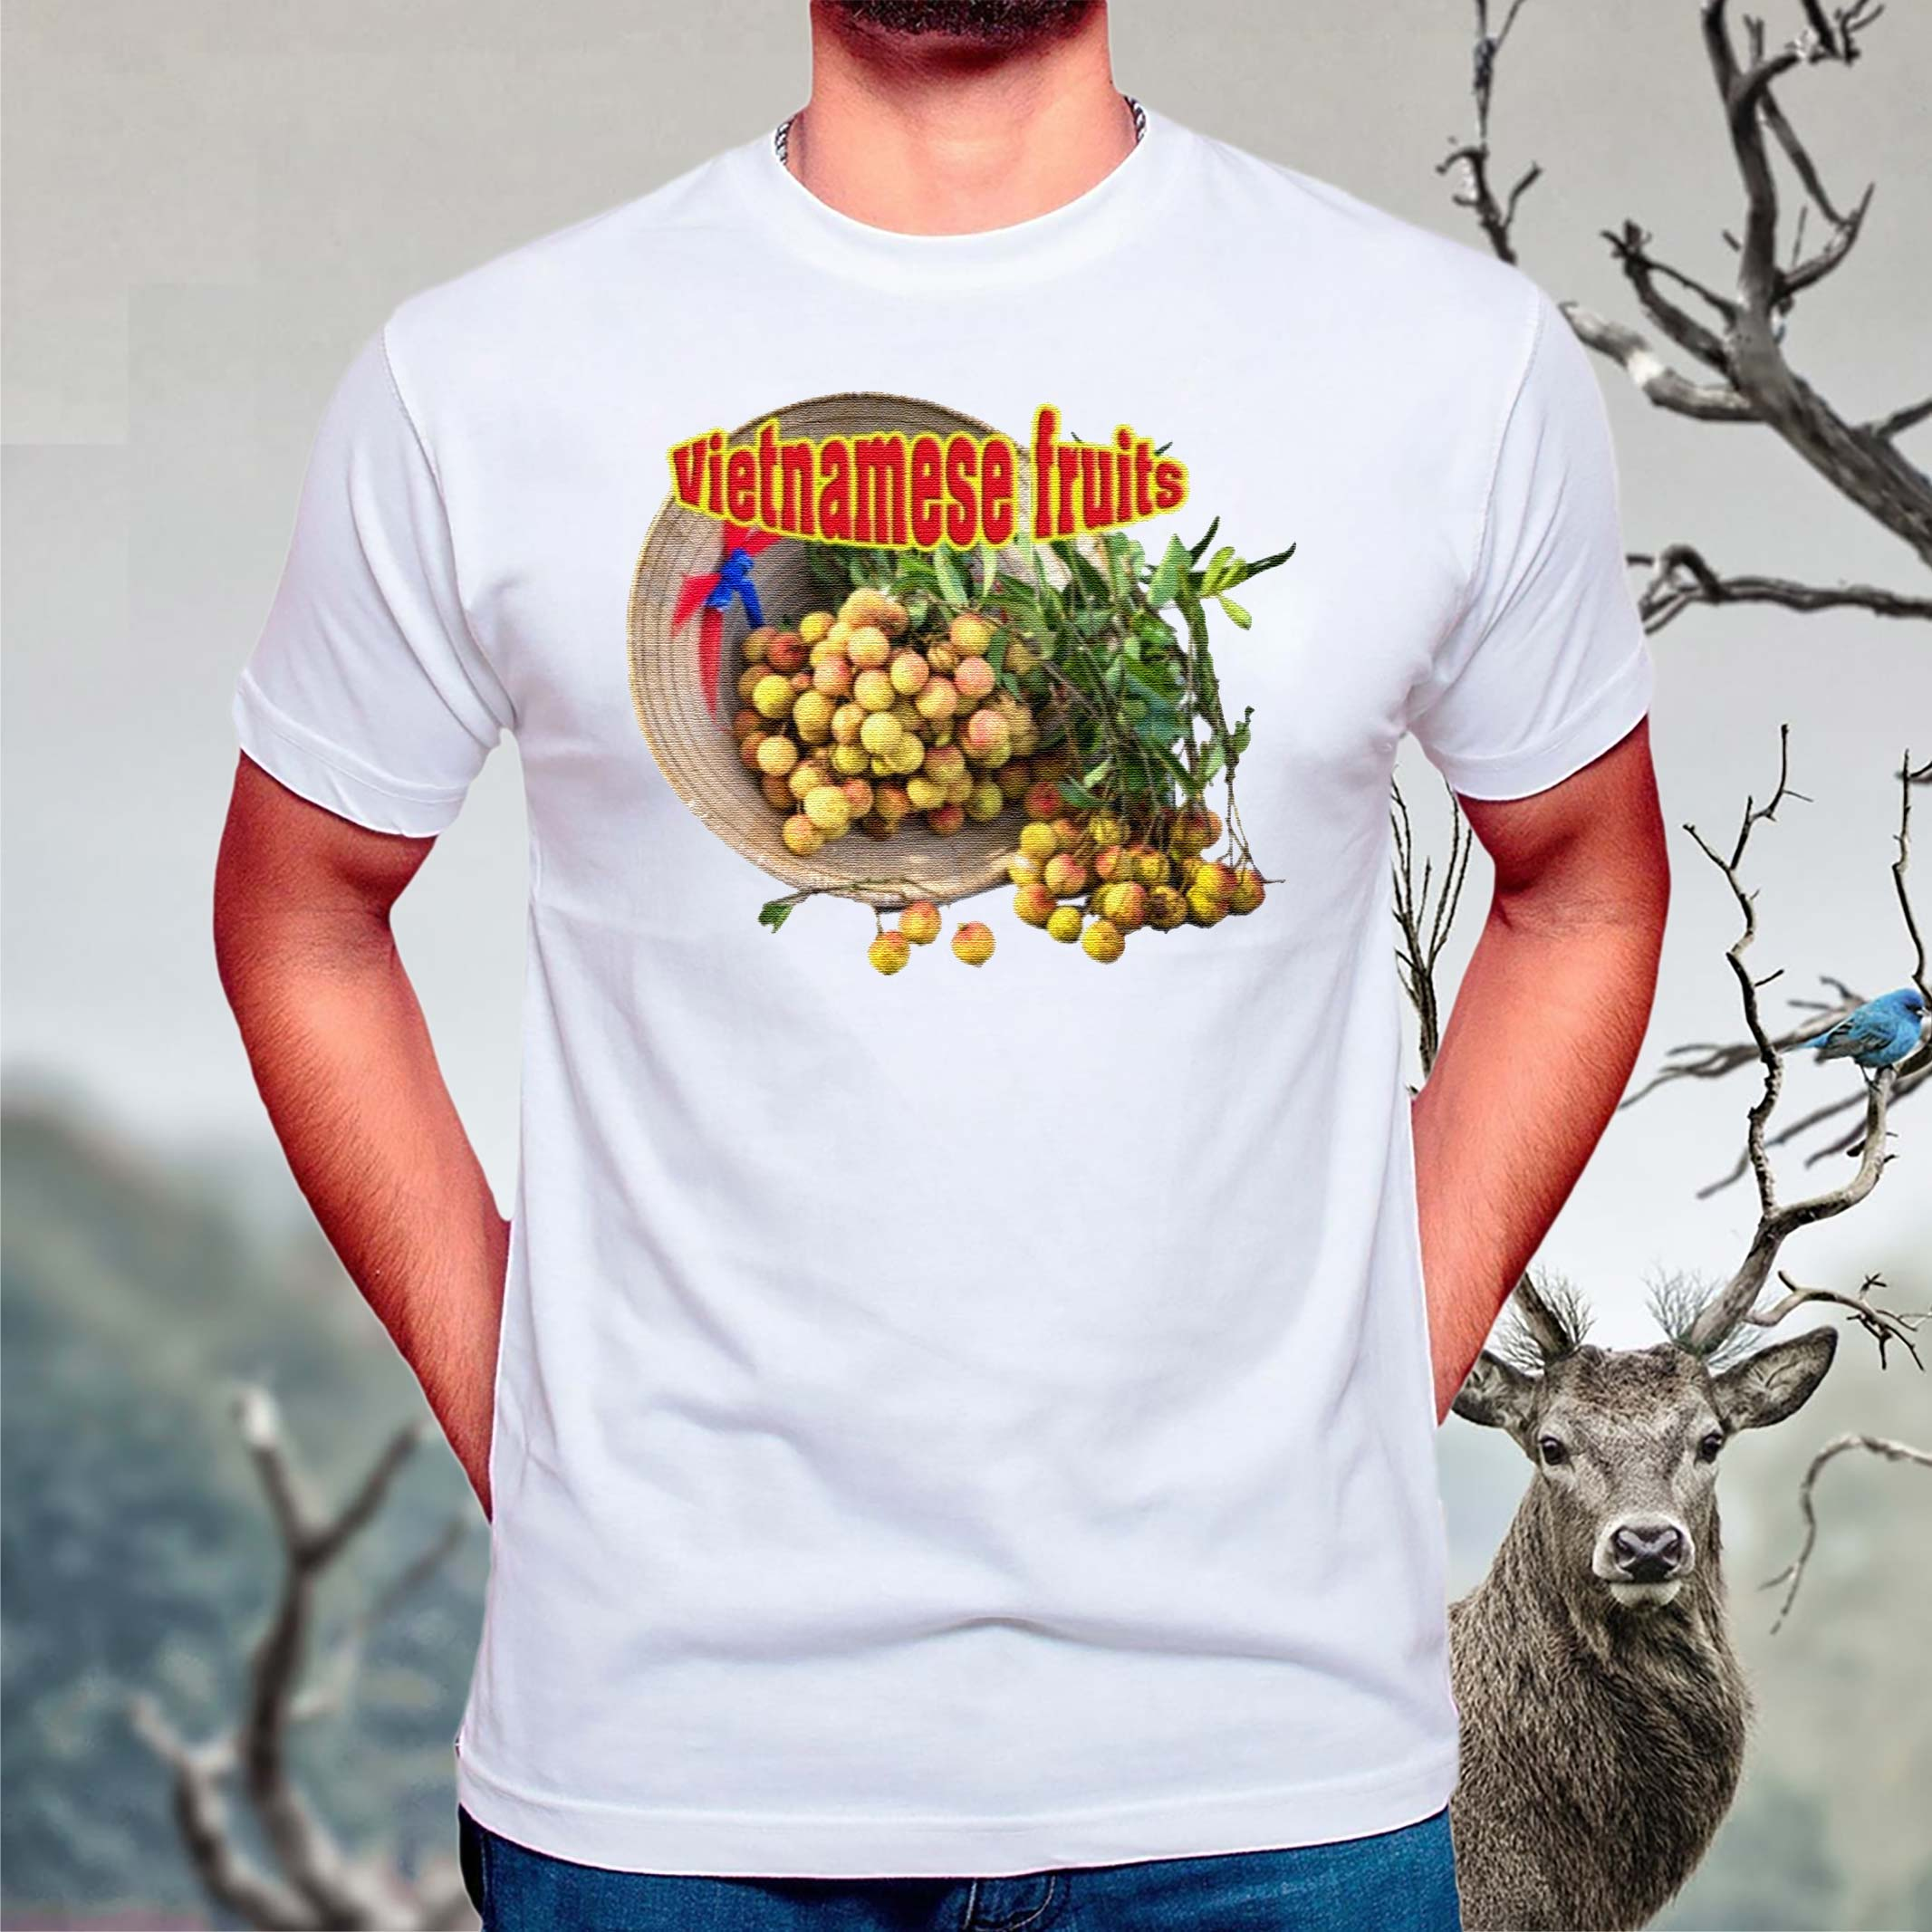 Vietnamese-fruits-Premium-t-shirts